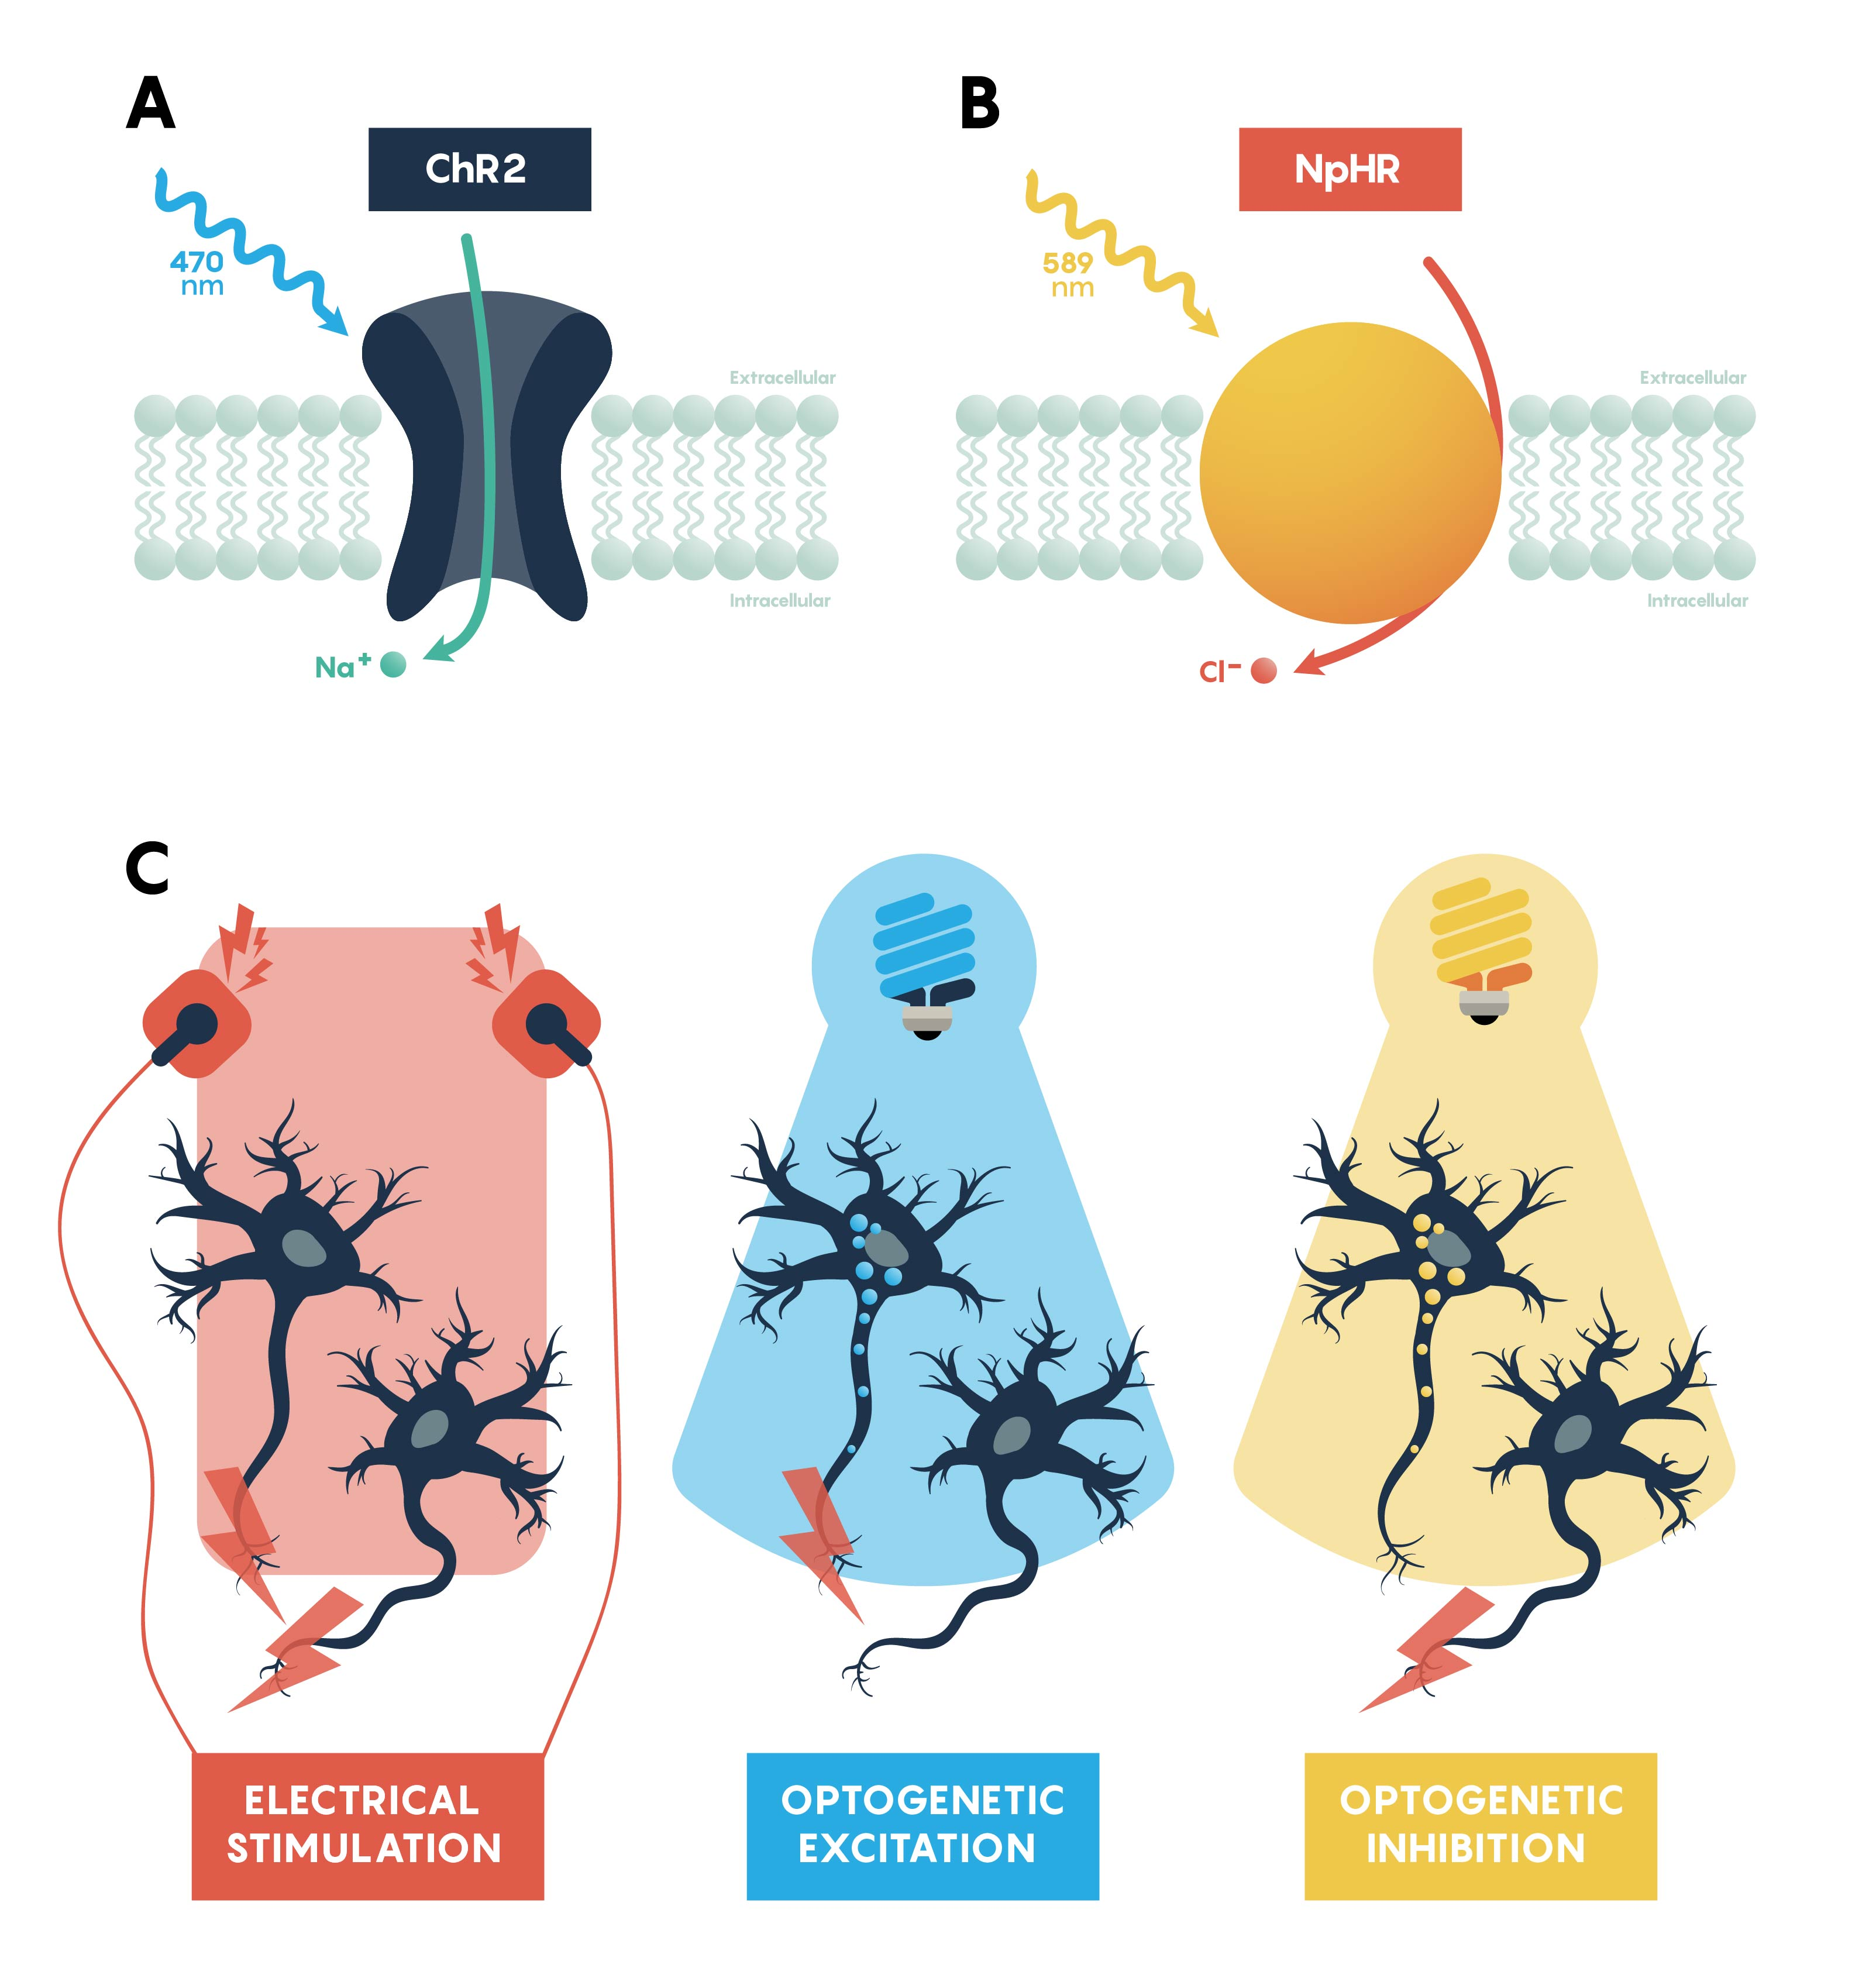 Panels summarizing the features of excitatory, ChR2, (A) and inhibitory, NpHR, (B) opsins. Panel C showing that all neurons would be excitable using a standard electrode. However, optogenetic excitation (blue light) and inhibition (yellow light) only work on specific neurons that express the appropriate opsin.